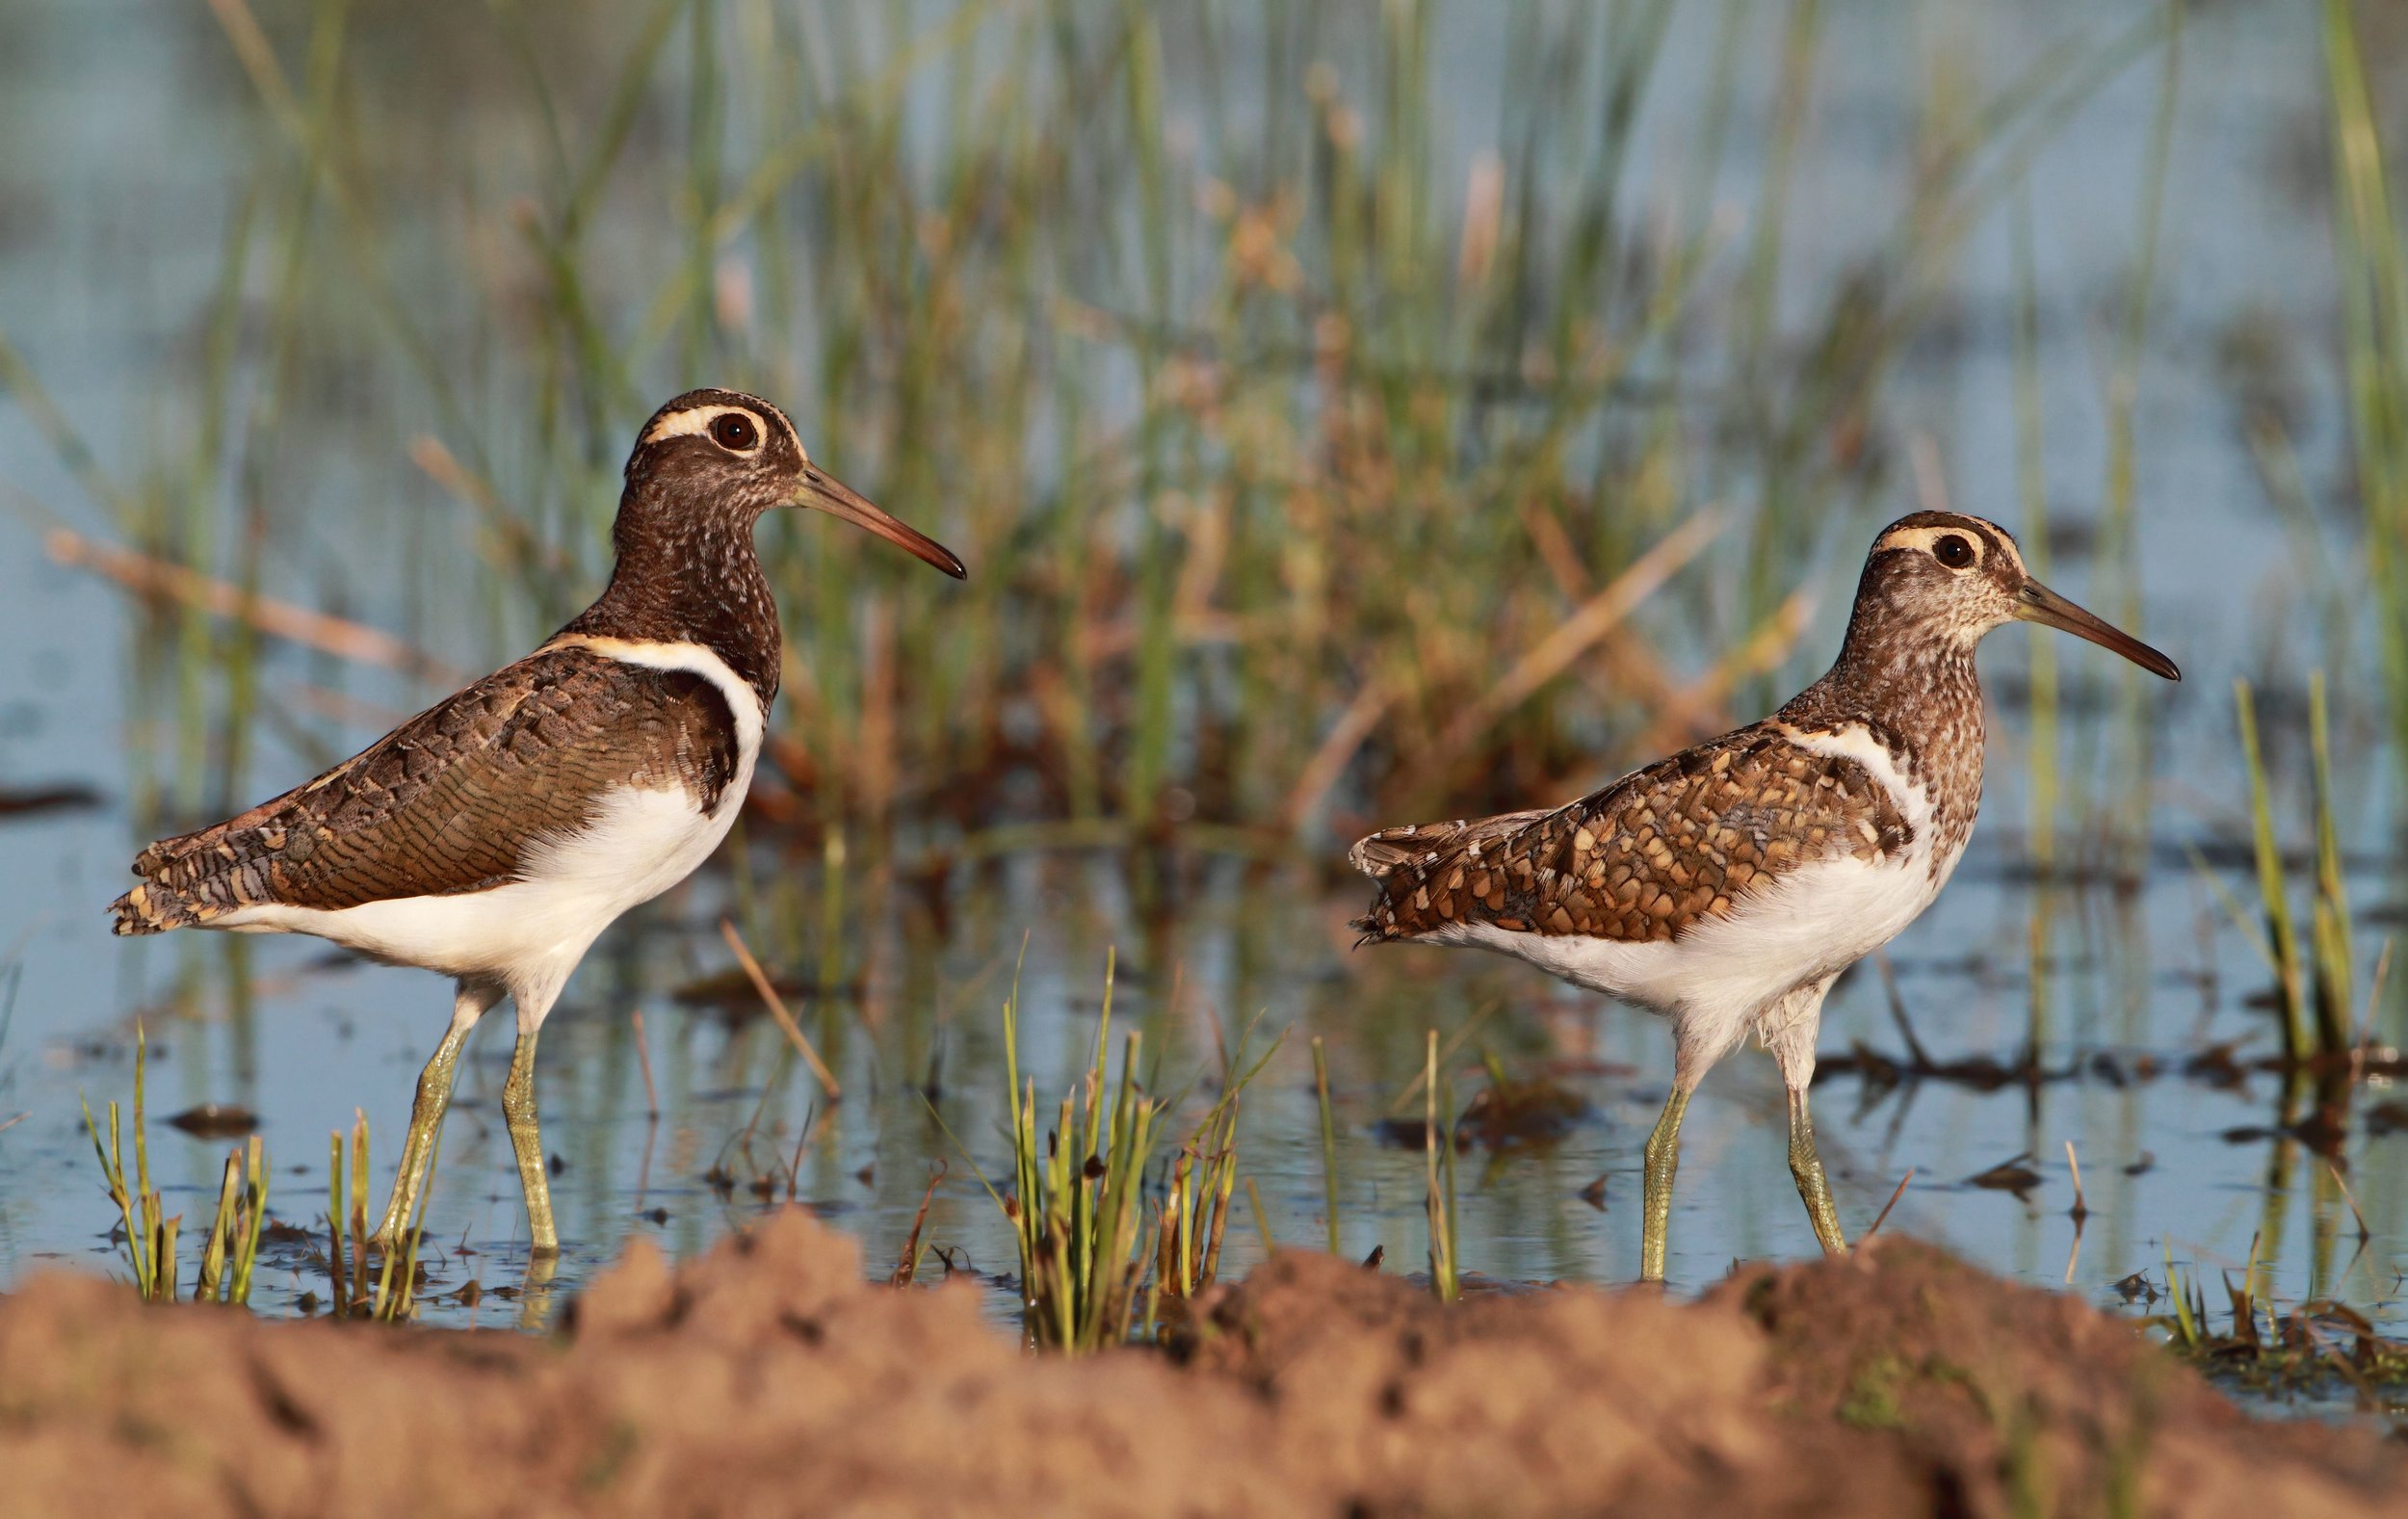 - Birdlife is calling on the Australian Government to deliver the full amount of environmental water committed in plan on time.